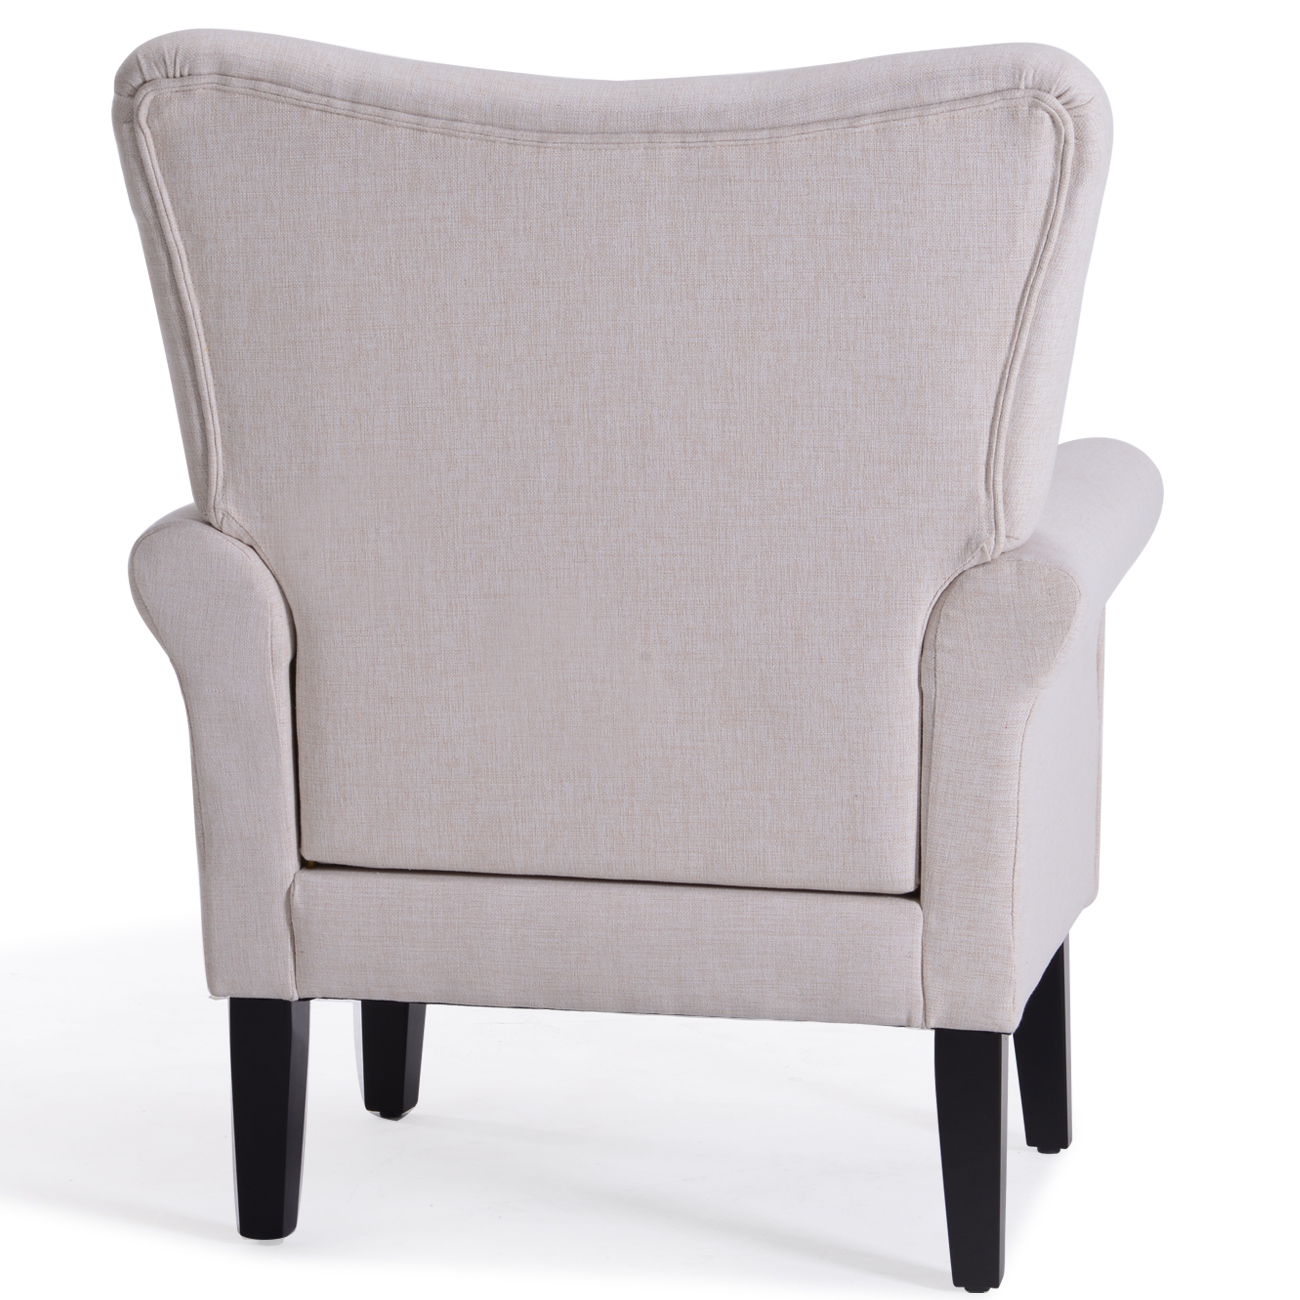 NEW Modern Tufted Accent Chair Living Room Armrest